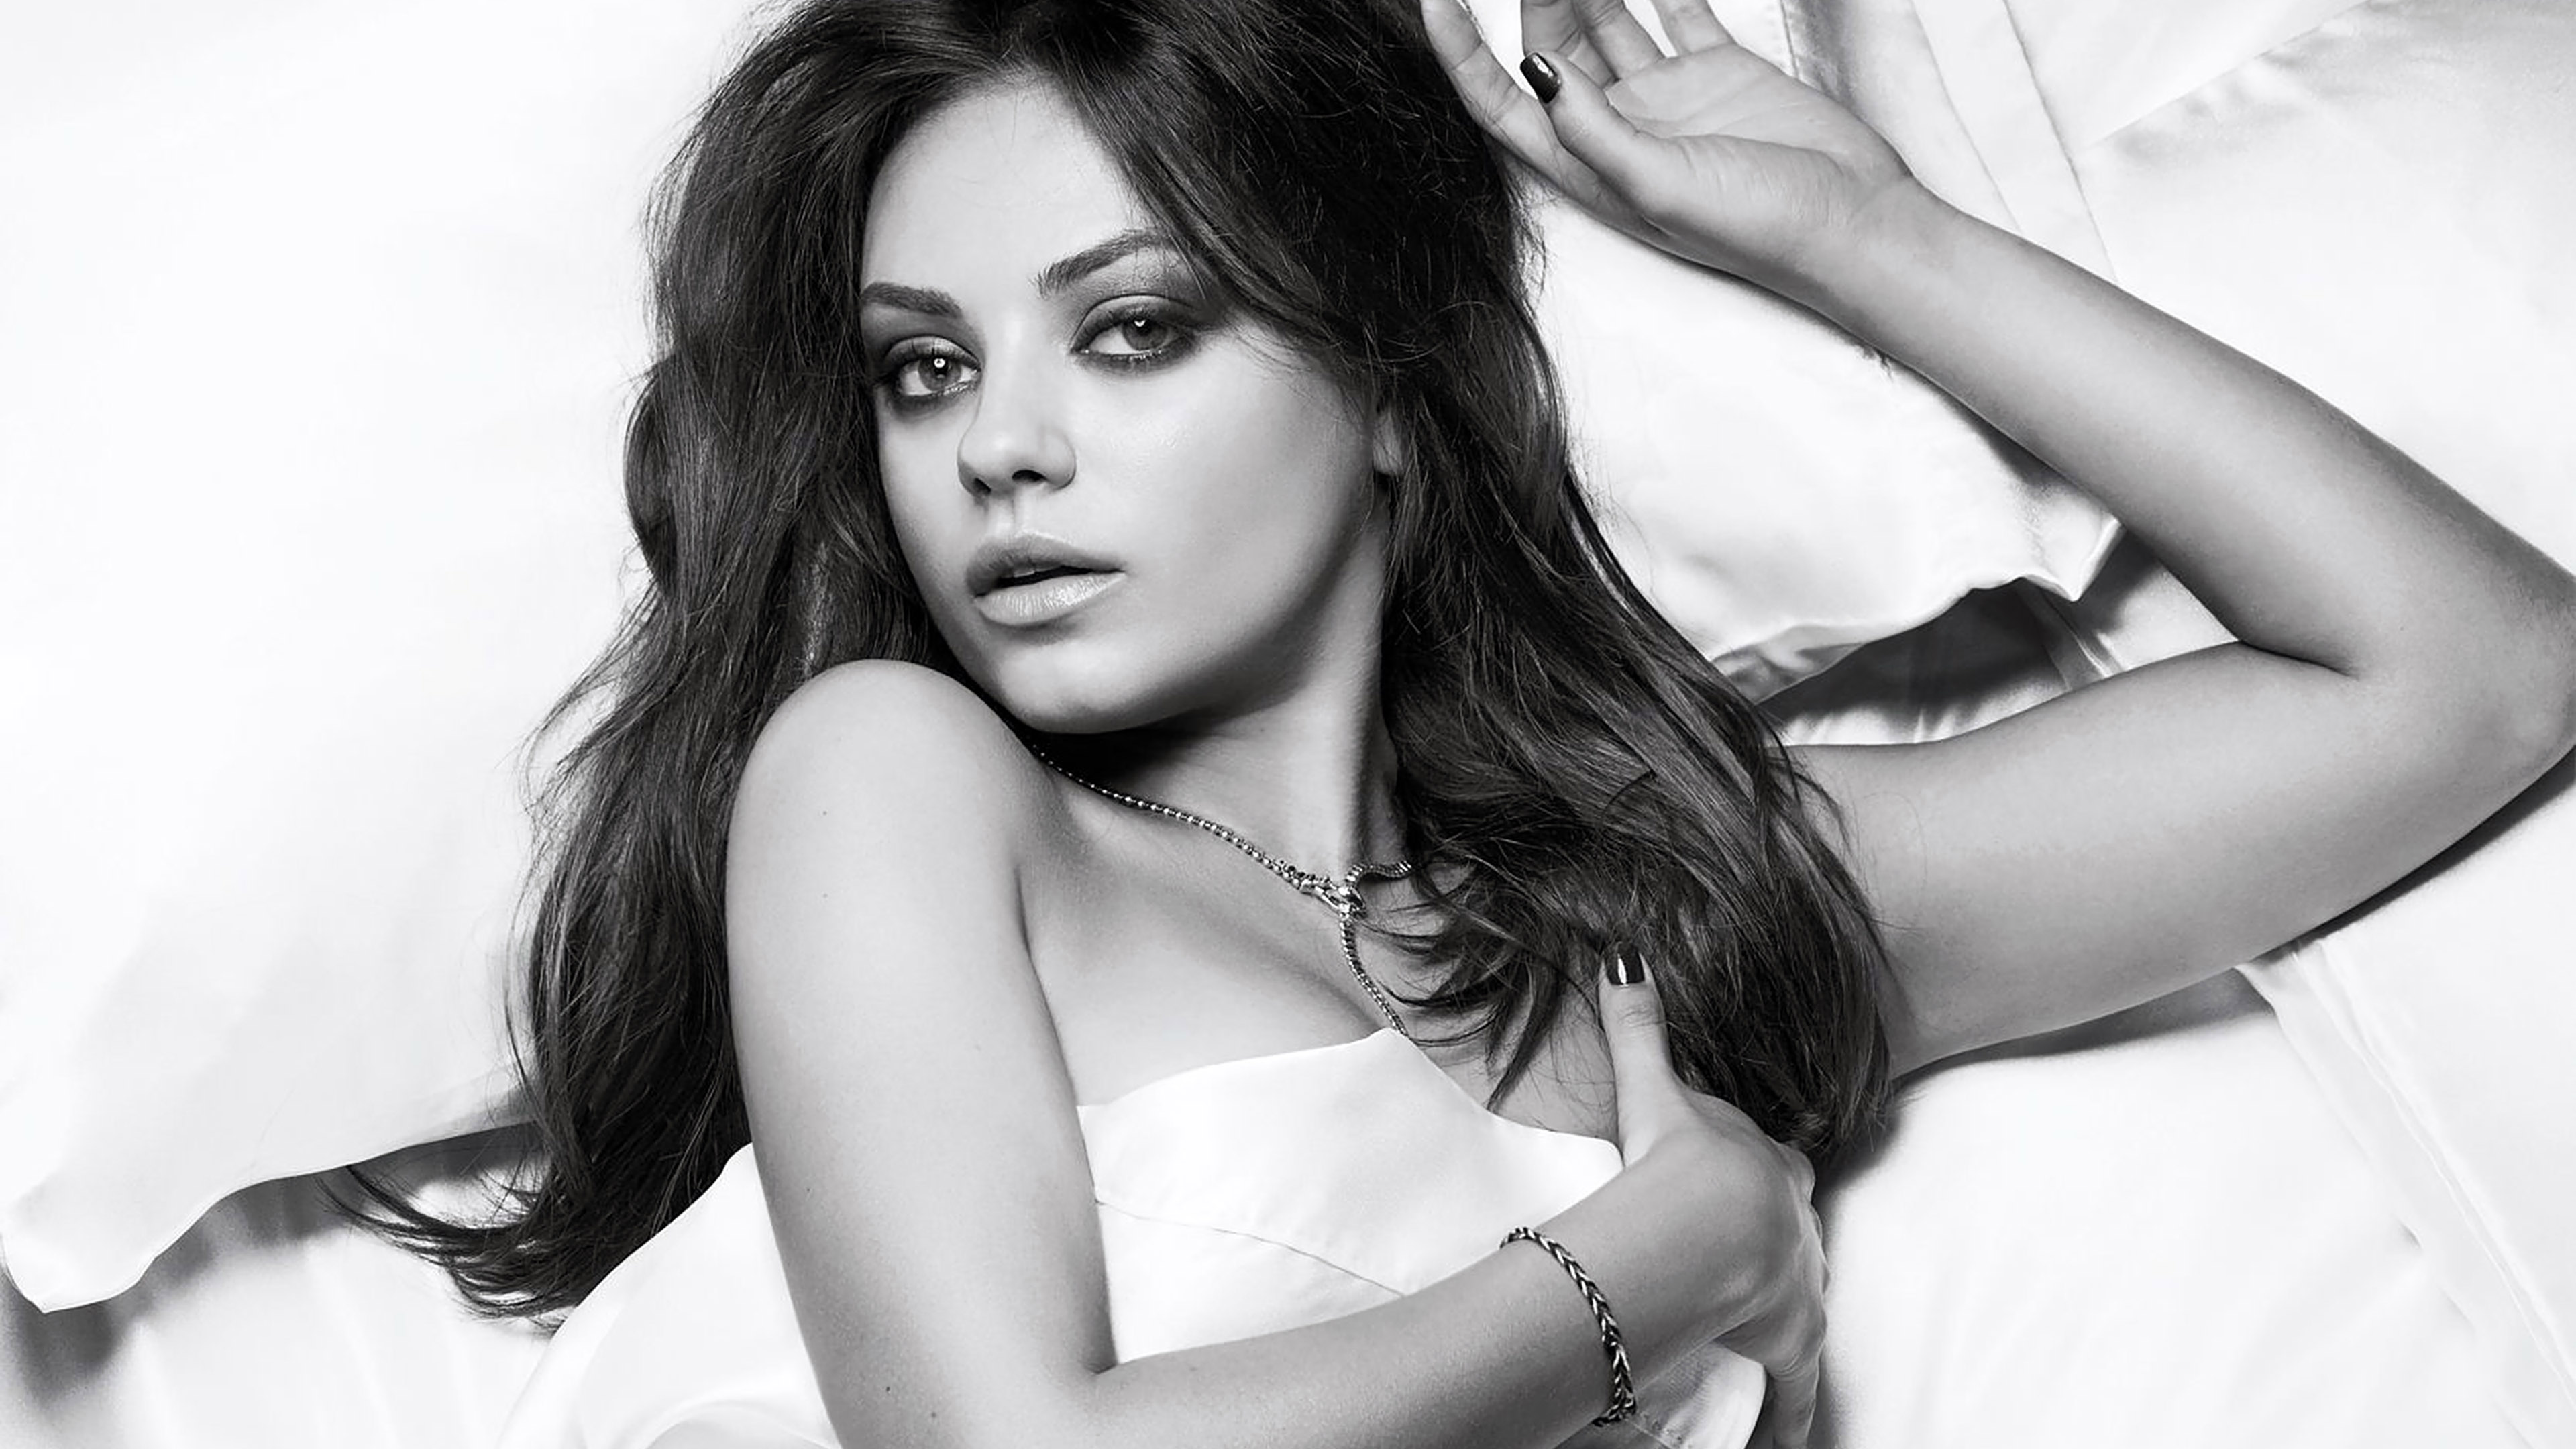 Cute Girl Smoking Wallpaper Ha99 Wallpaper Mila Kunis Esquire Sexy Woman Face Papers Co